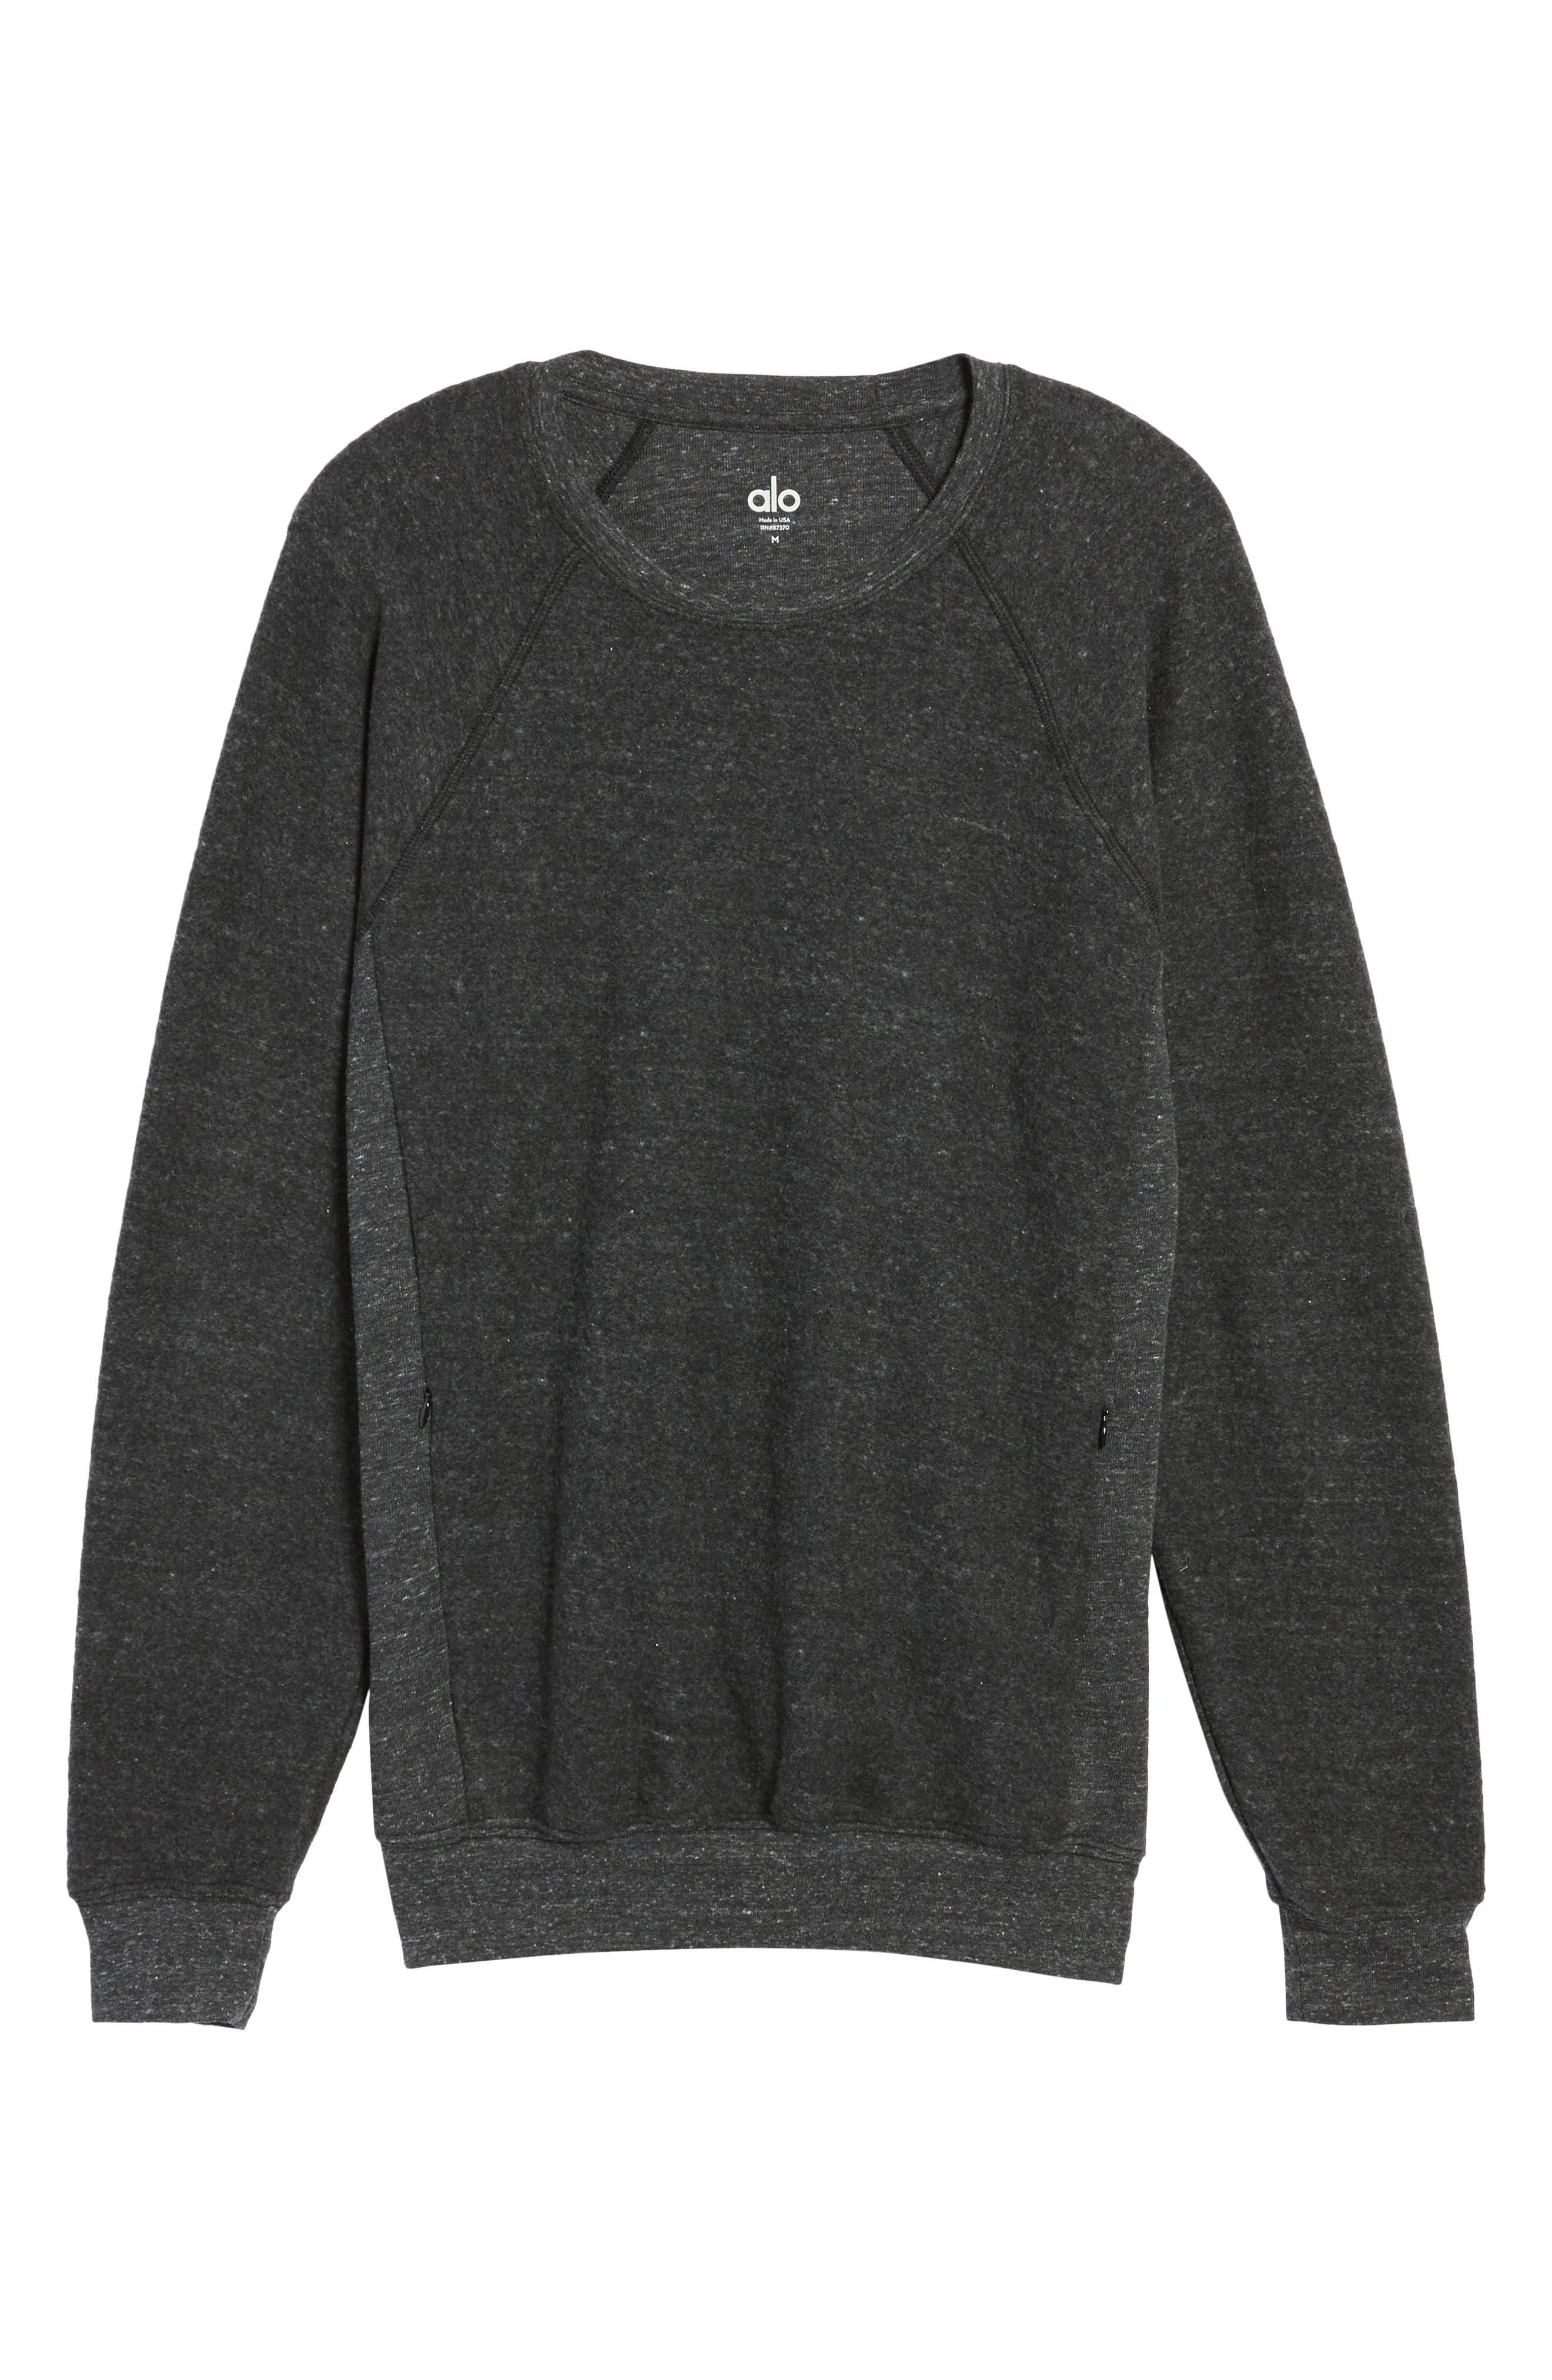 Relaxed Fit Felted Sweatshirt,                             Alternate thumbnail 6, color,                             CHARCOAL BLACK TRIBLEND